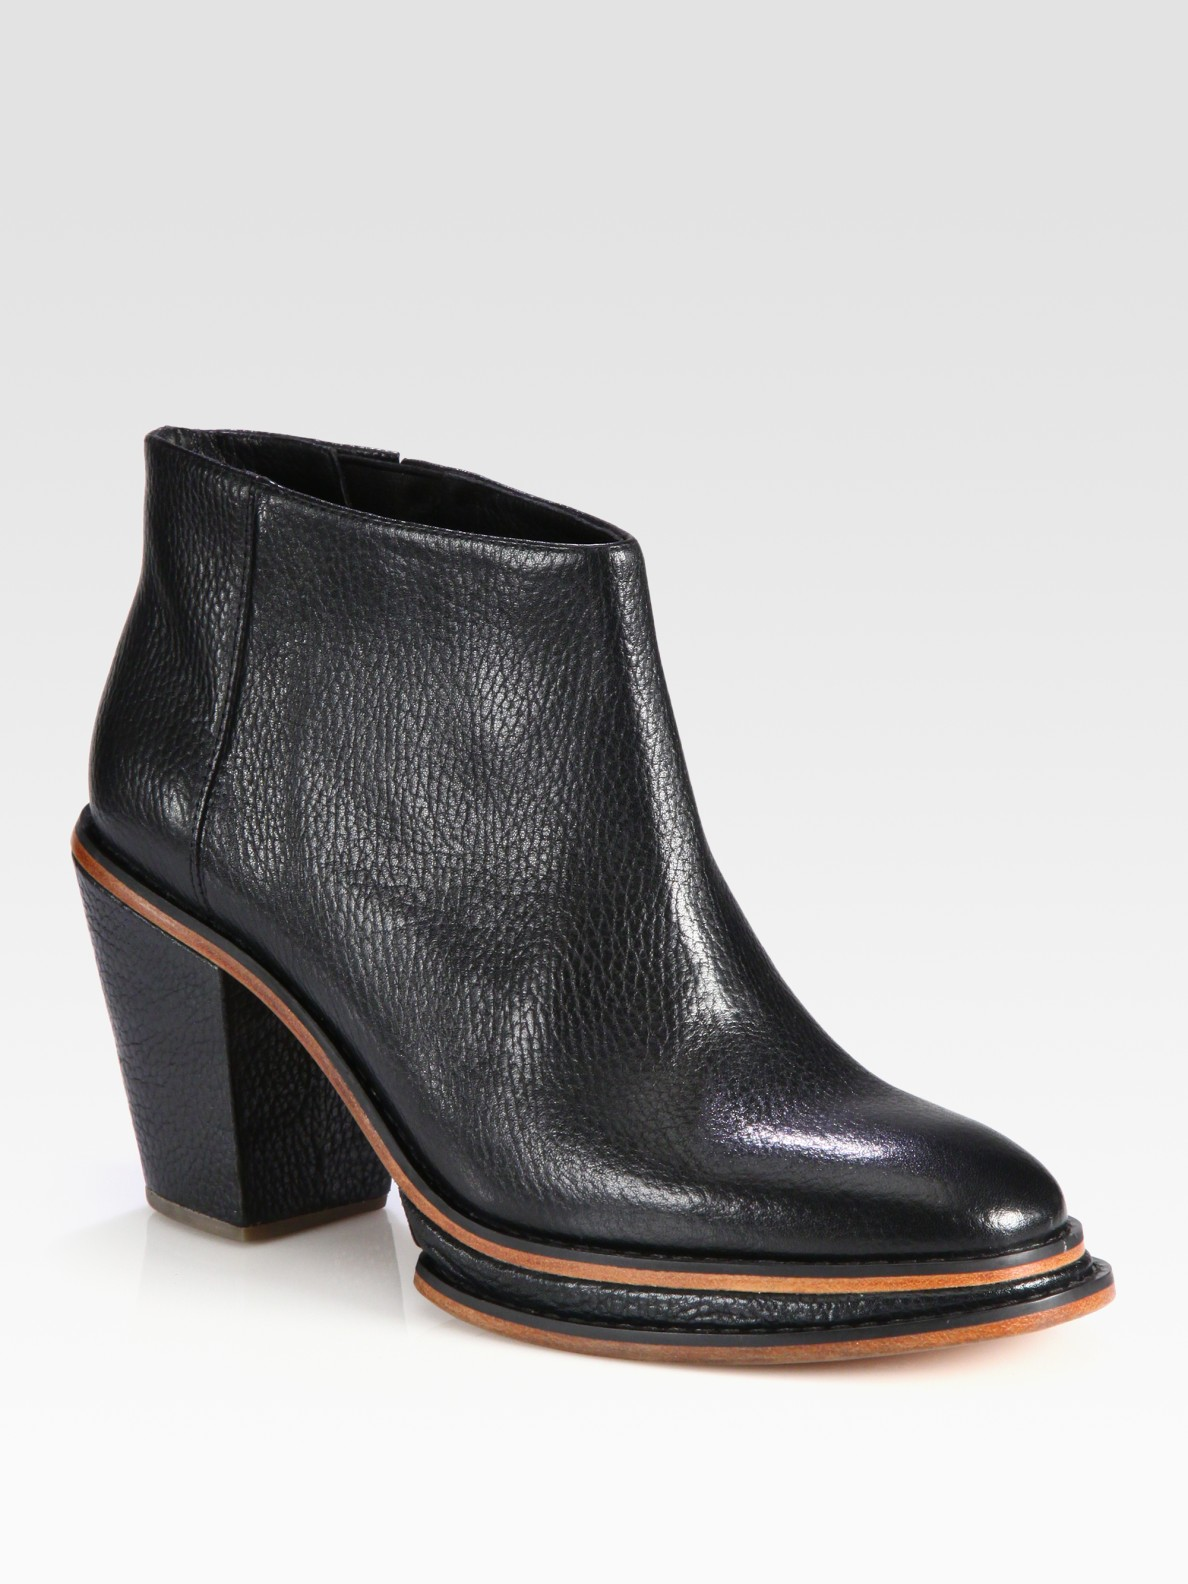 81296a5cca40 Lyst - Rachel Comey Twotone Leather Ankle Boots in Black